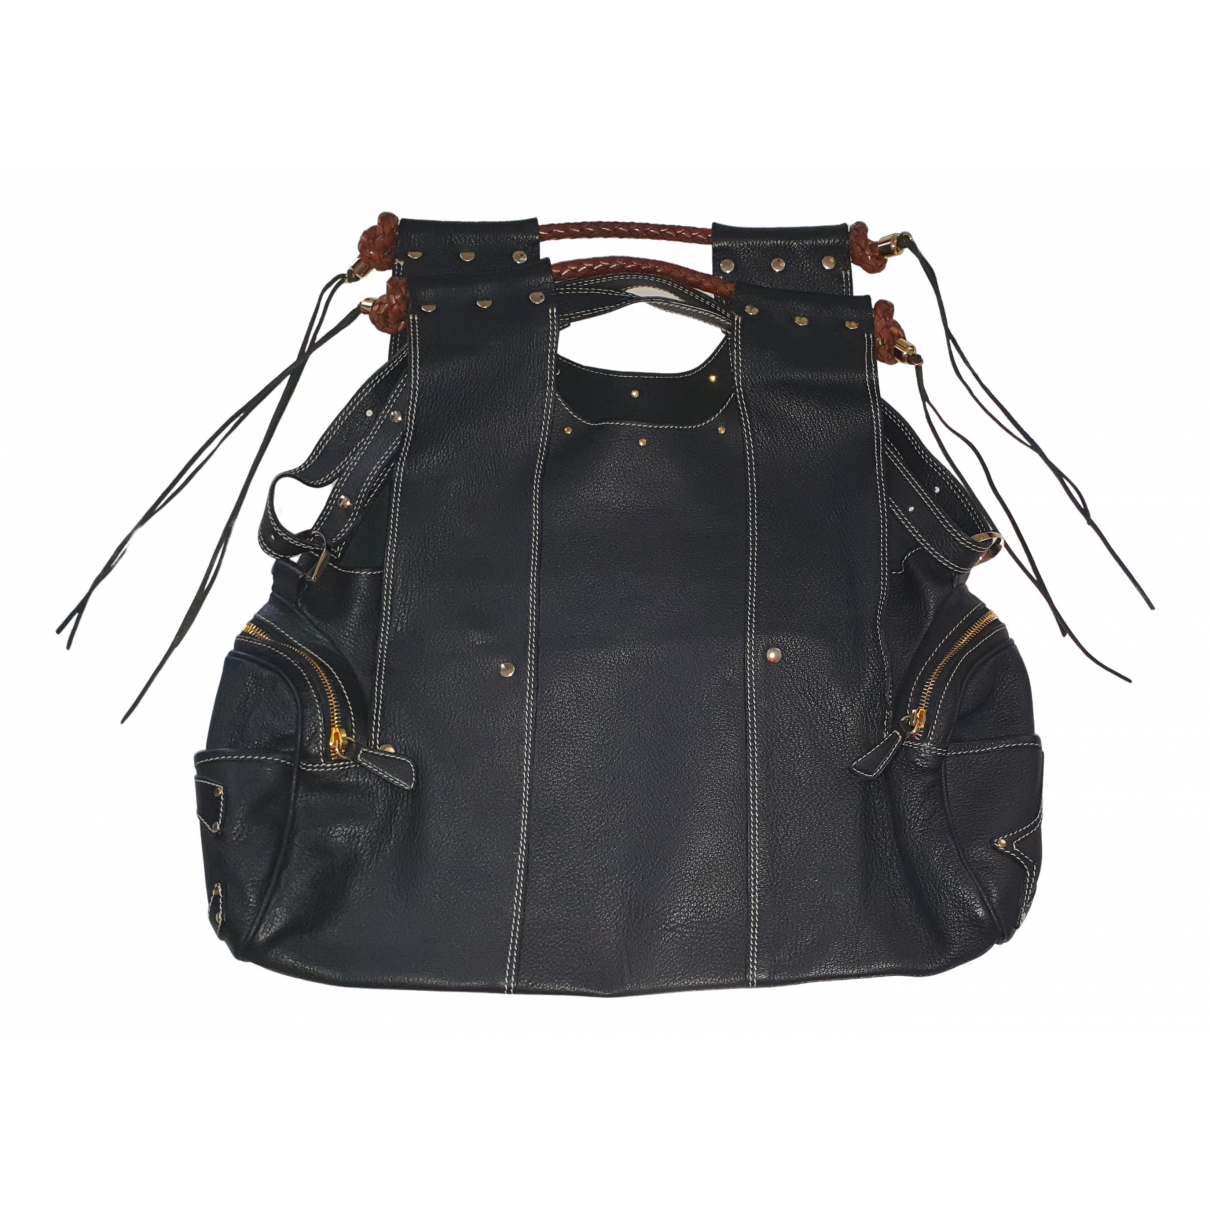 Corto Moltedo N Black Leather handbag for Women N